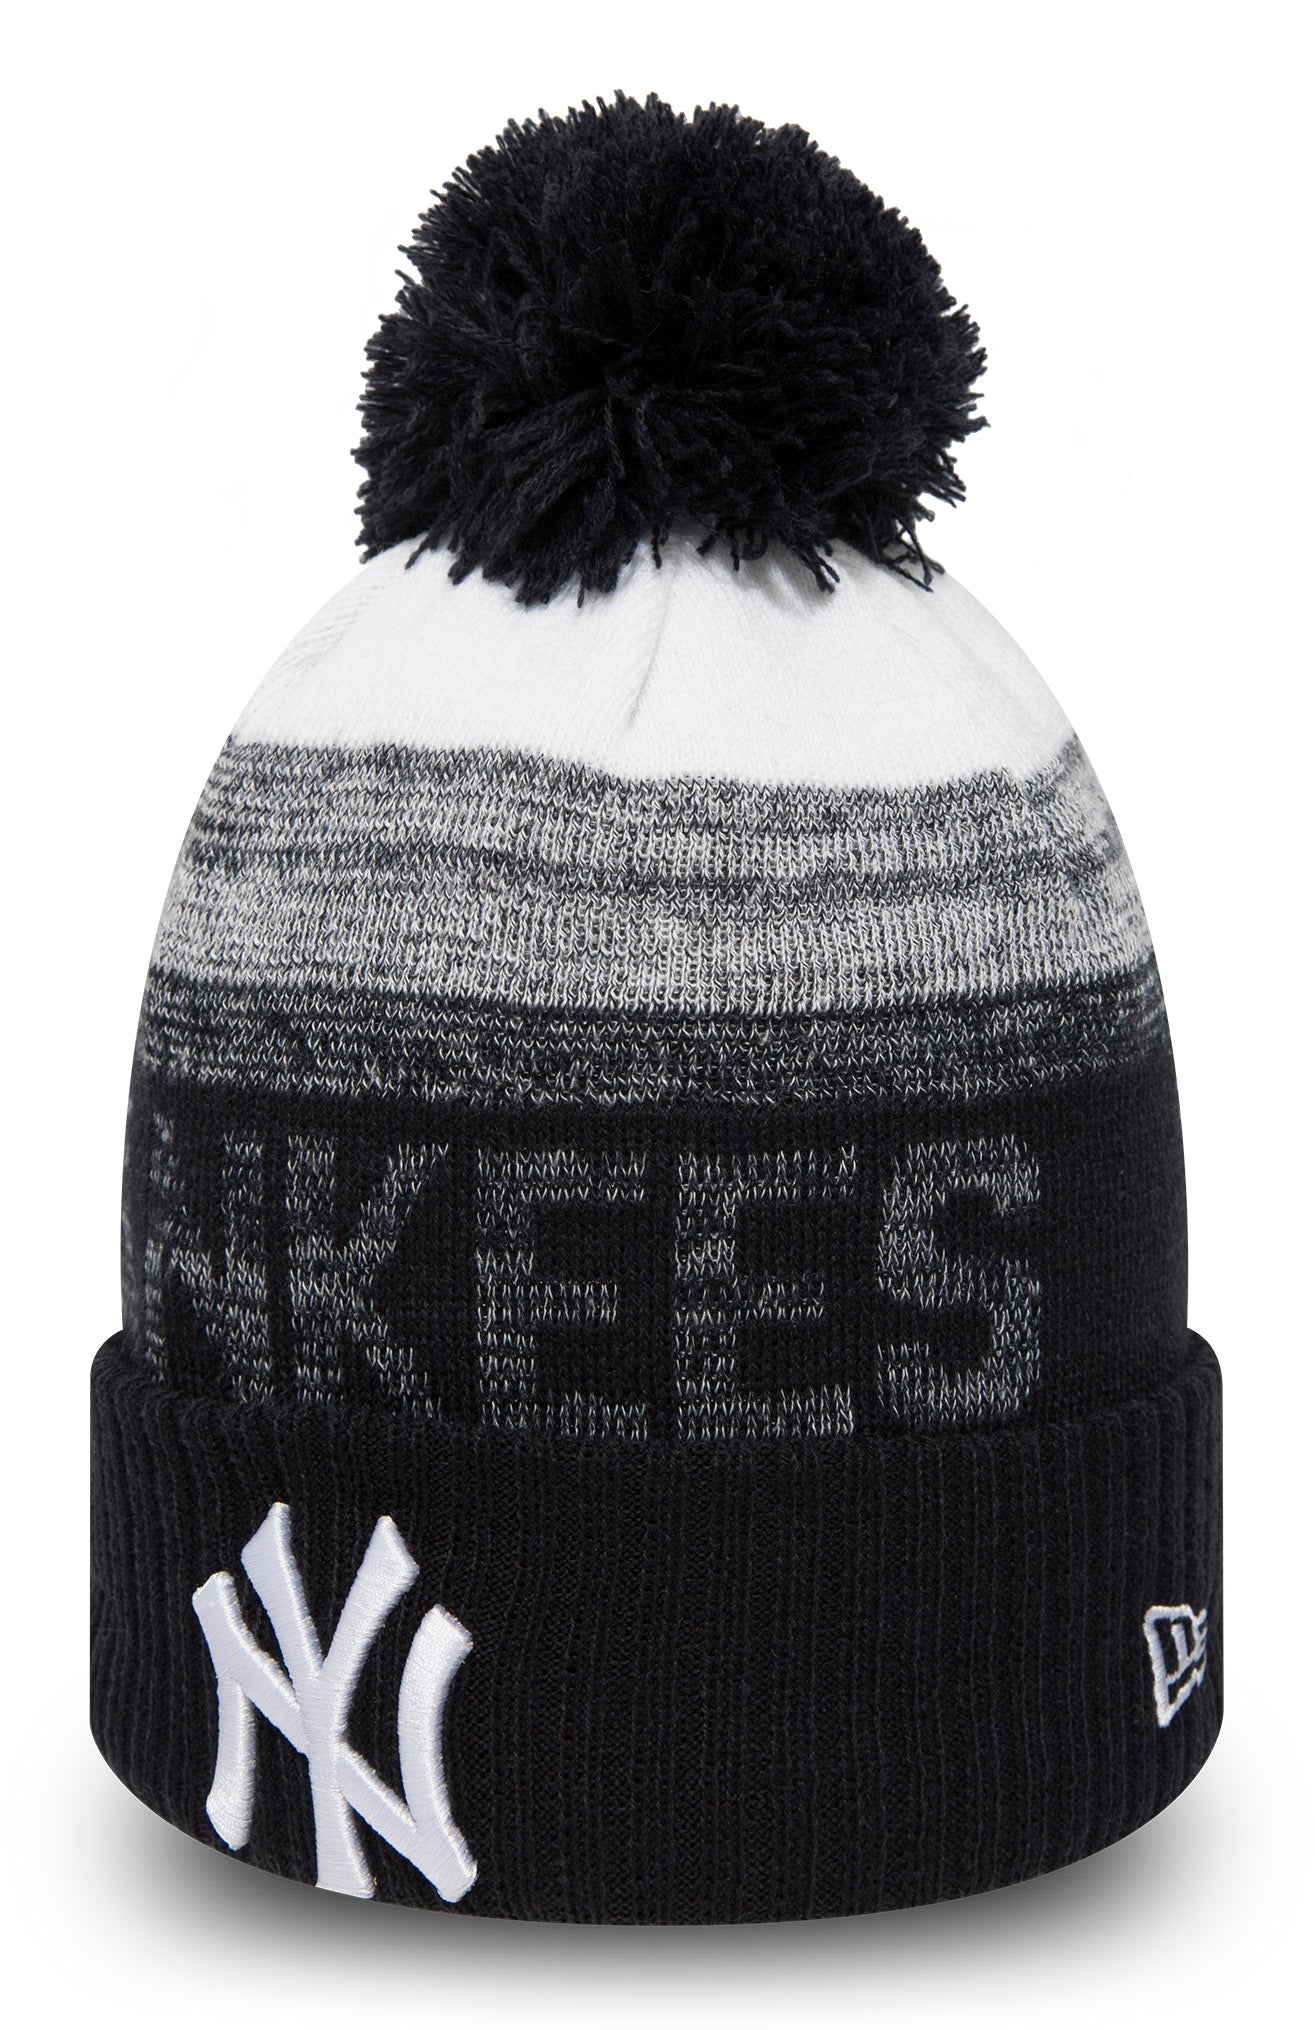 0b549a9a268b25 New York yankees New Era Kids Sport Knit Bobble Hat (Ages 2 - 10 years –  lovemycap